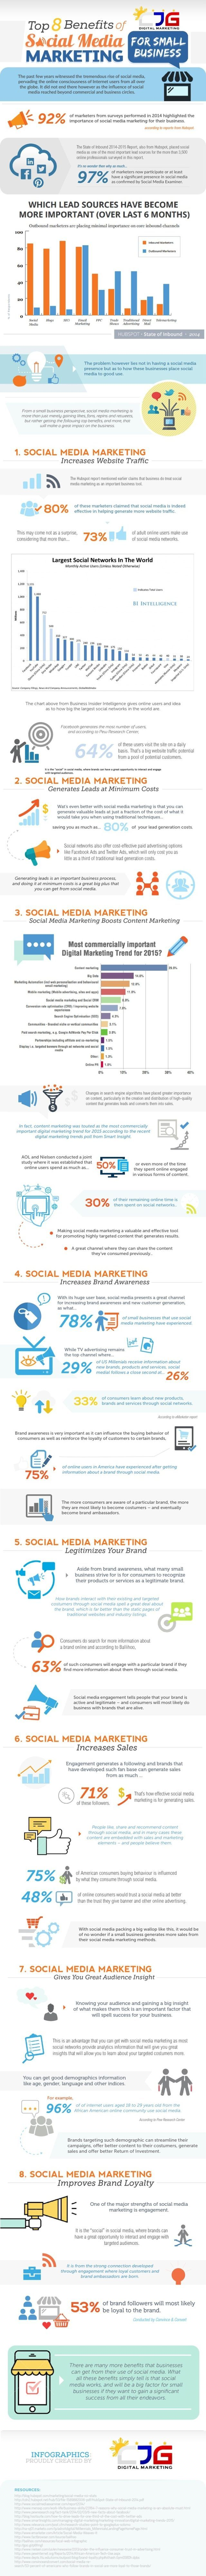 Small Business Benefits of Social Media